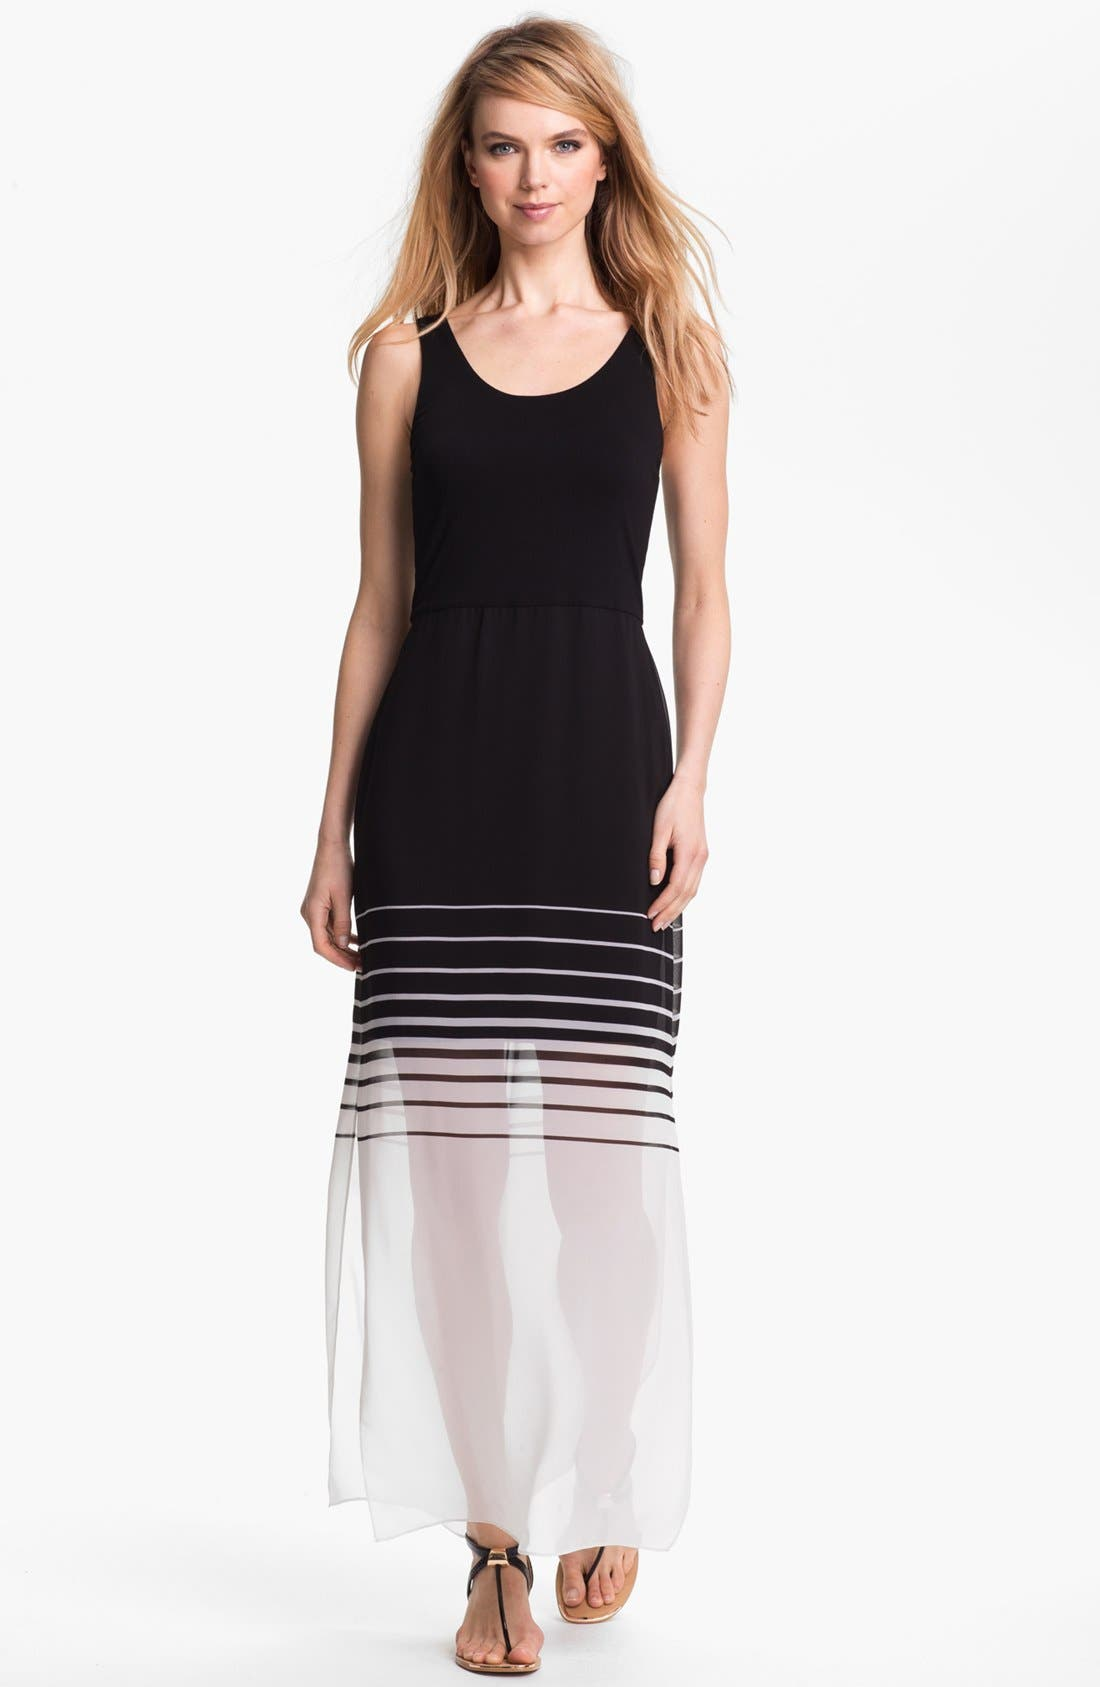 Alternate Image 1 Selected - Vince Camuto Mixed Media Maxi Dress (Regular & Petite)